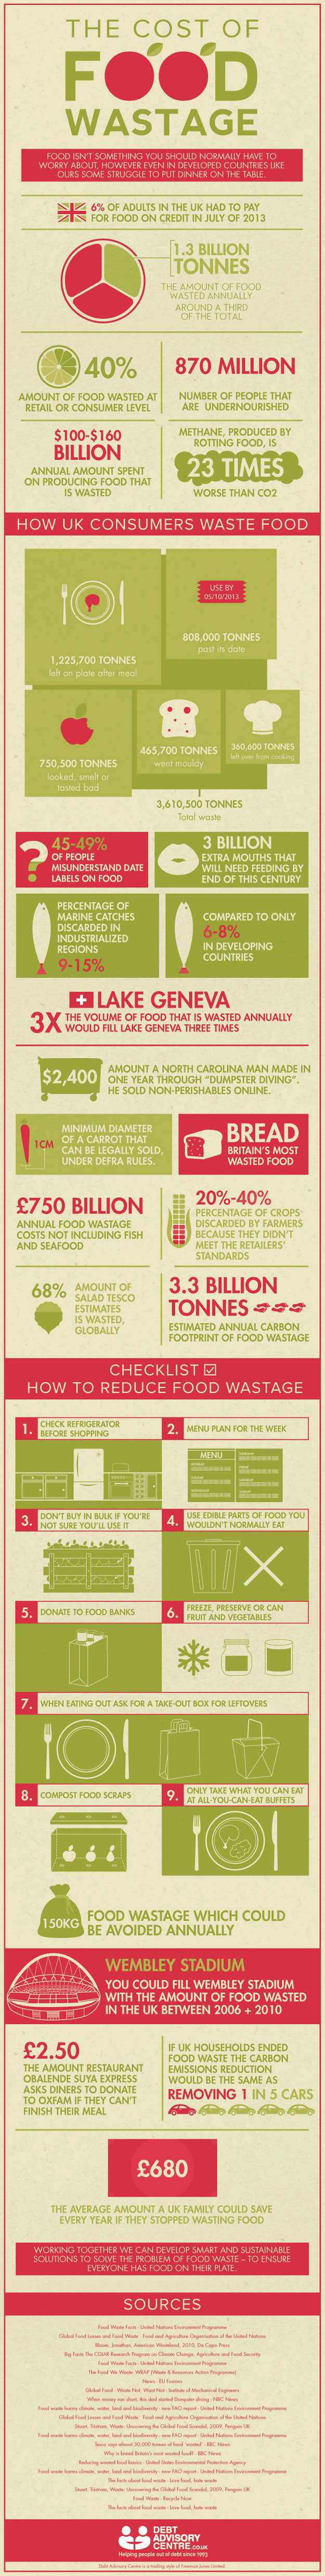 The Cost of Food Wastage by Debt Advisory Centre